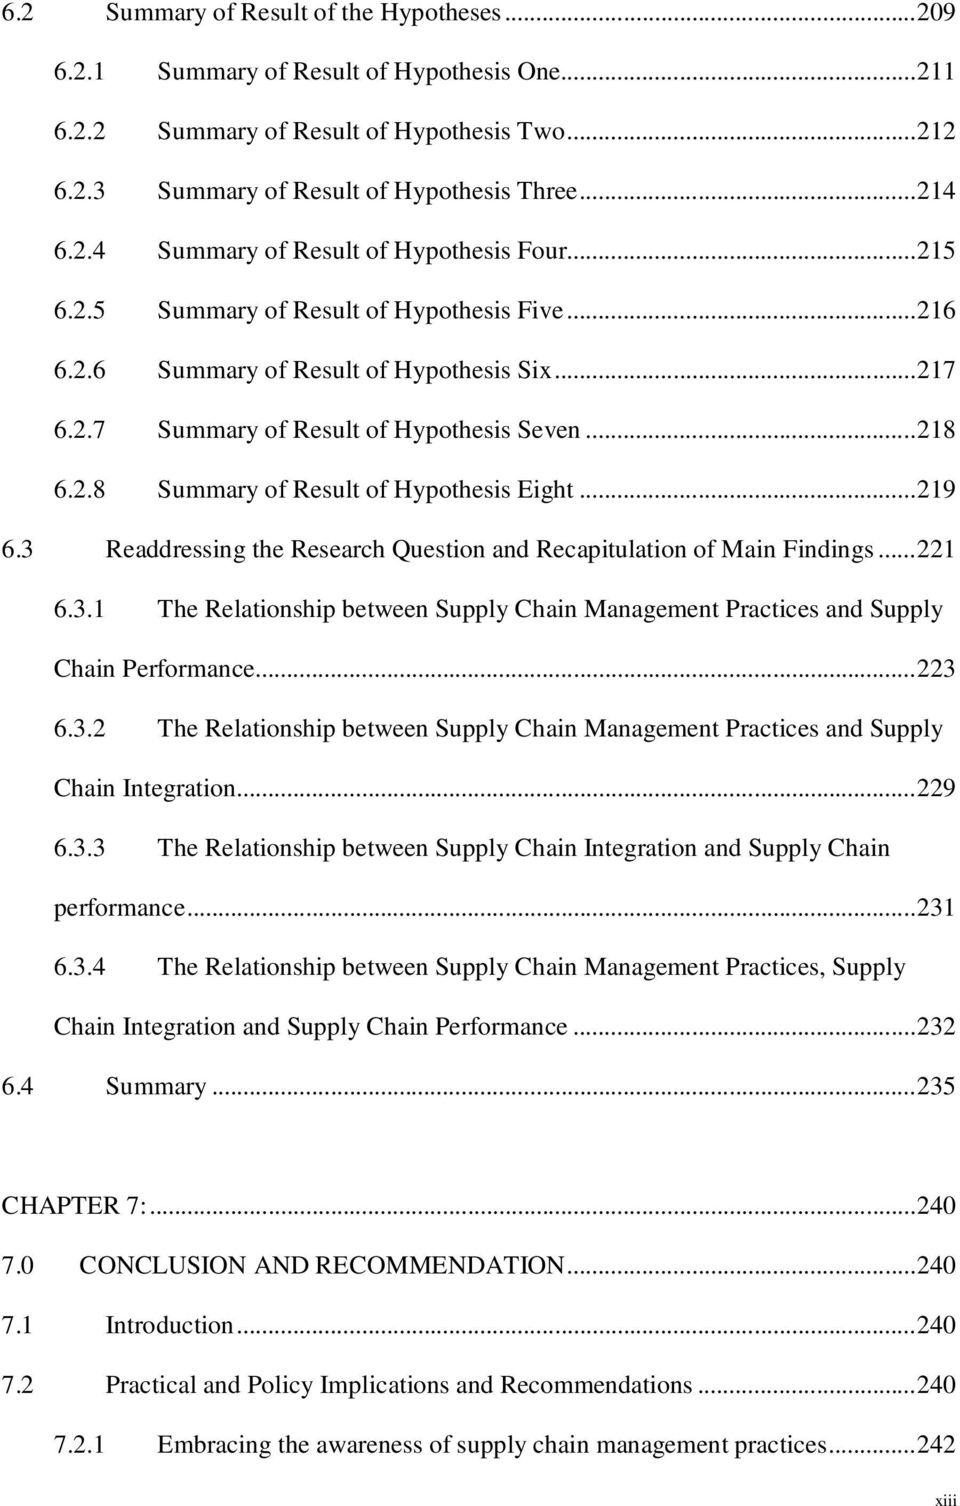 ..219 6.3 Readdressing the Research Question and Recapitulation of Main Findings...221 6.3.1 The Relationship between Supply Chain Management Practices and Supply Chain Performance...223 6.3.2 The Relationship between Supply Chain Management Practices and Supply Chain Integration.